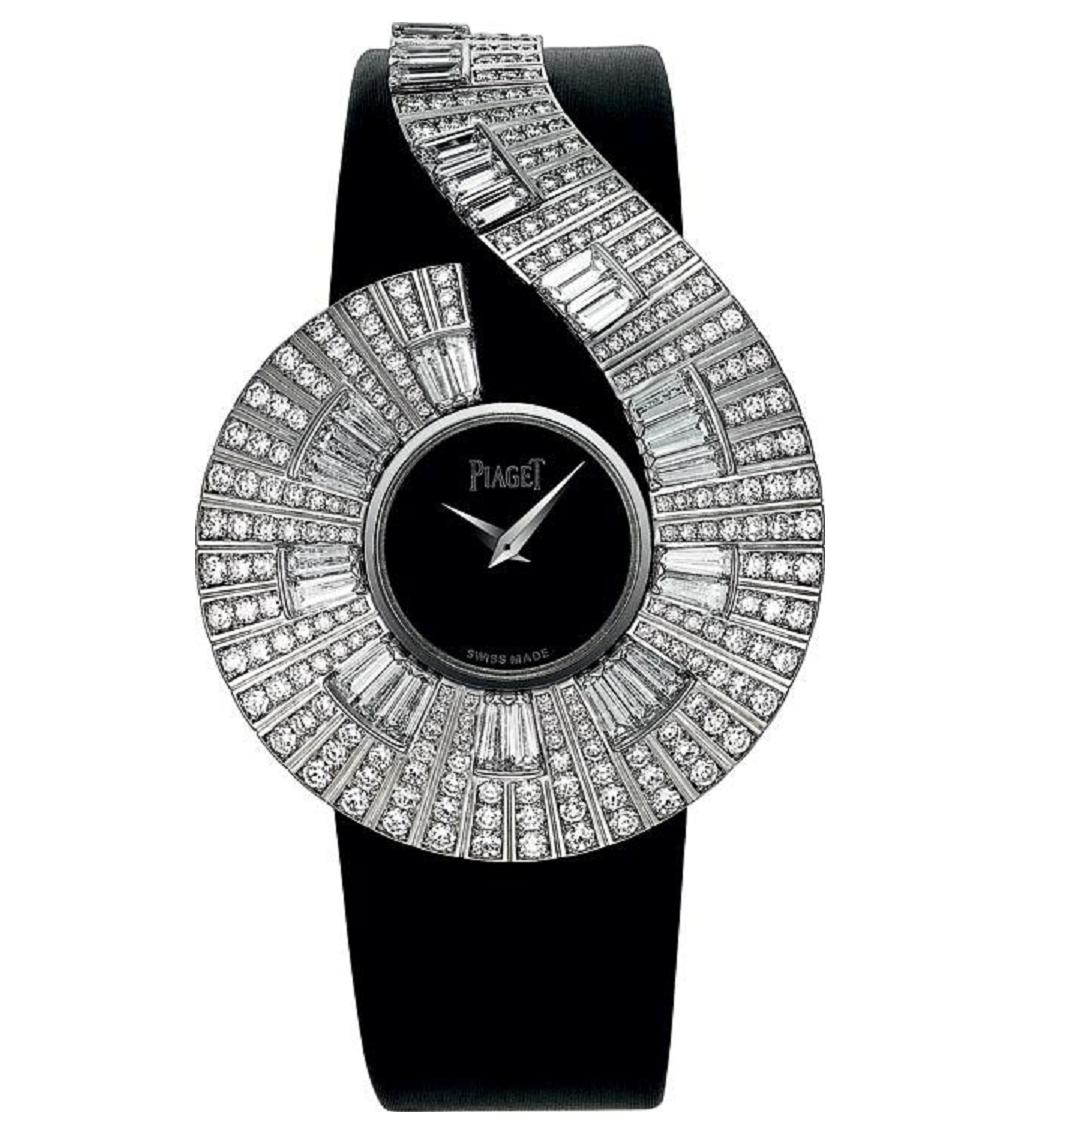 BEST WOMEN'S Bling WATCHES 2021 Piaget Watch with Black Dial with A Hallo Of Rhinestones and Black Leather Strap